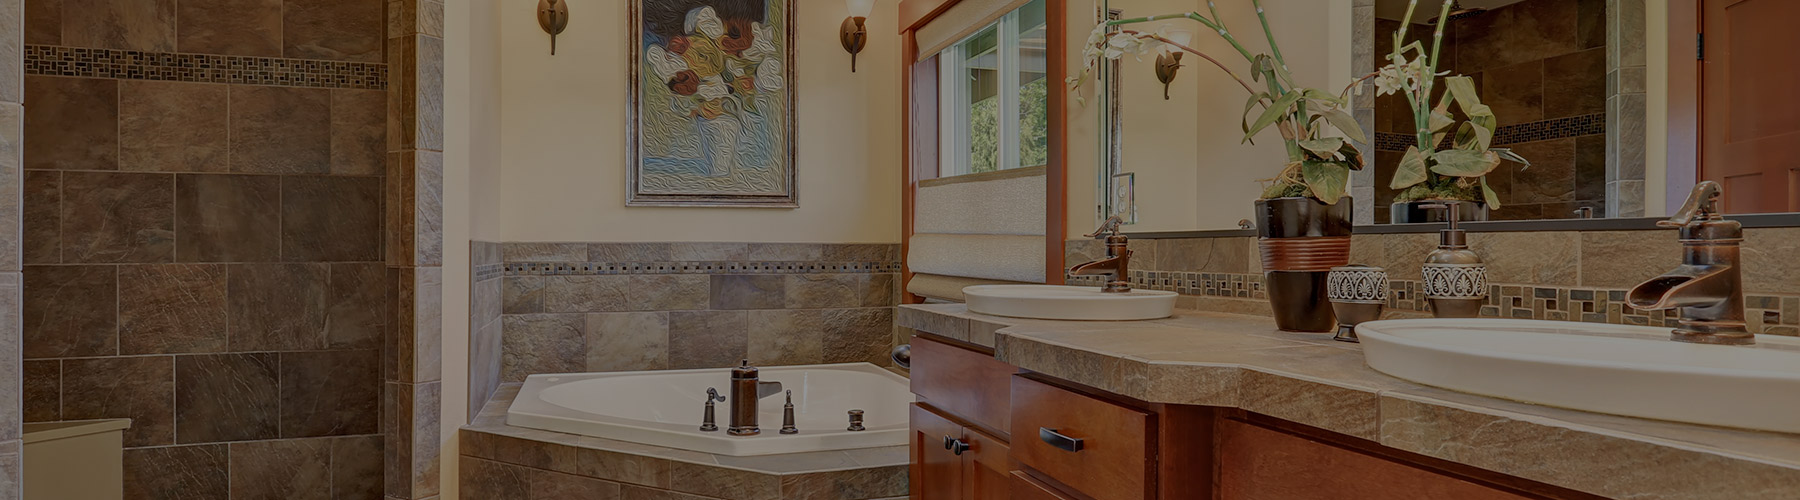 Bathroom remodeling services myrtle beach bathroom Bathroom remodeling services